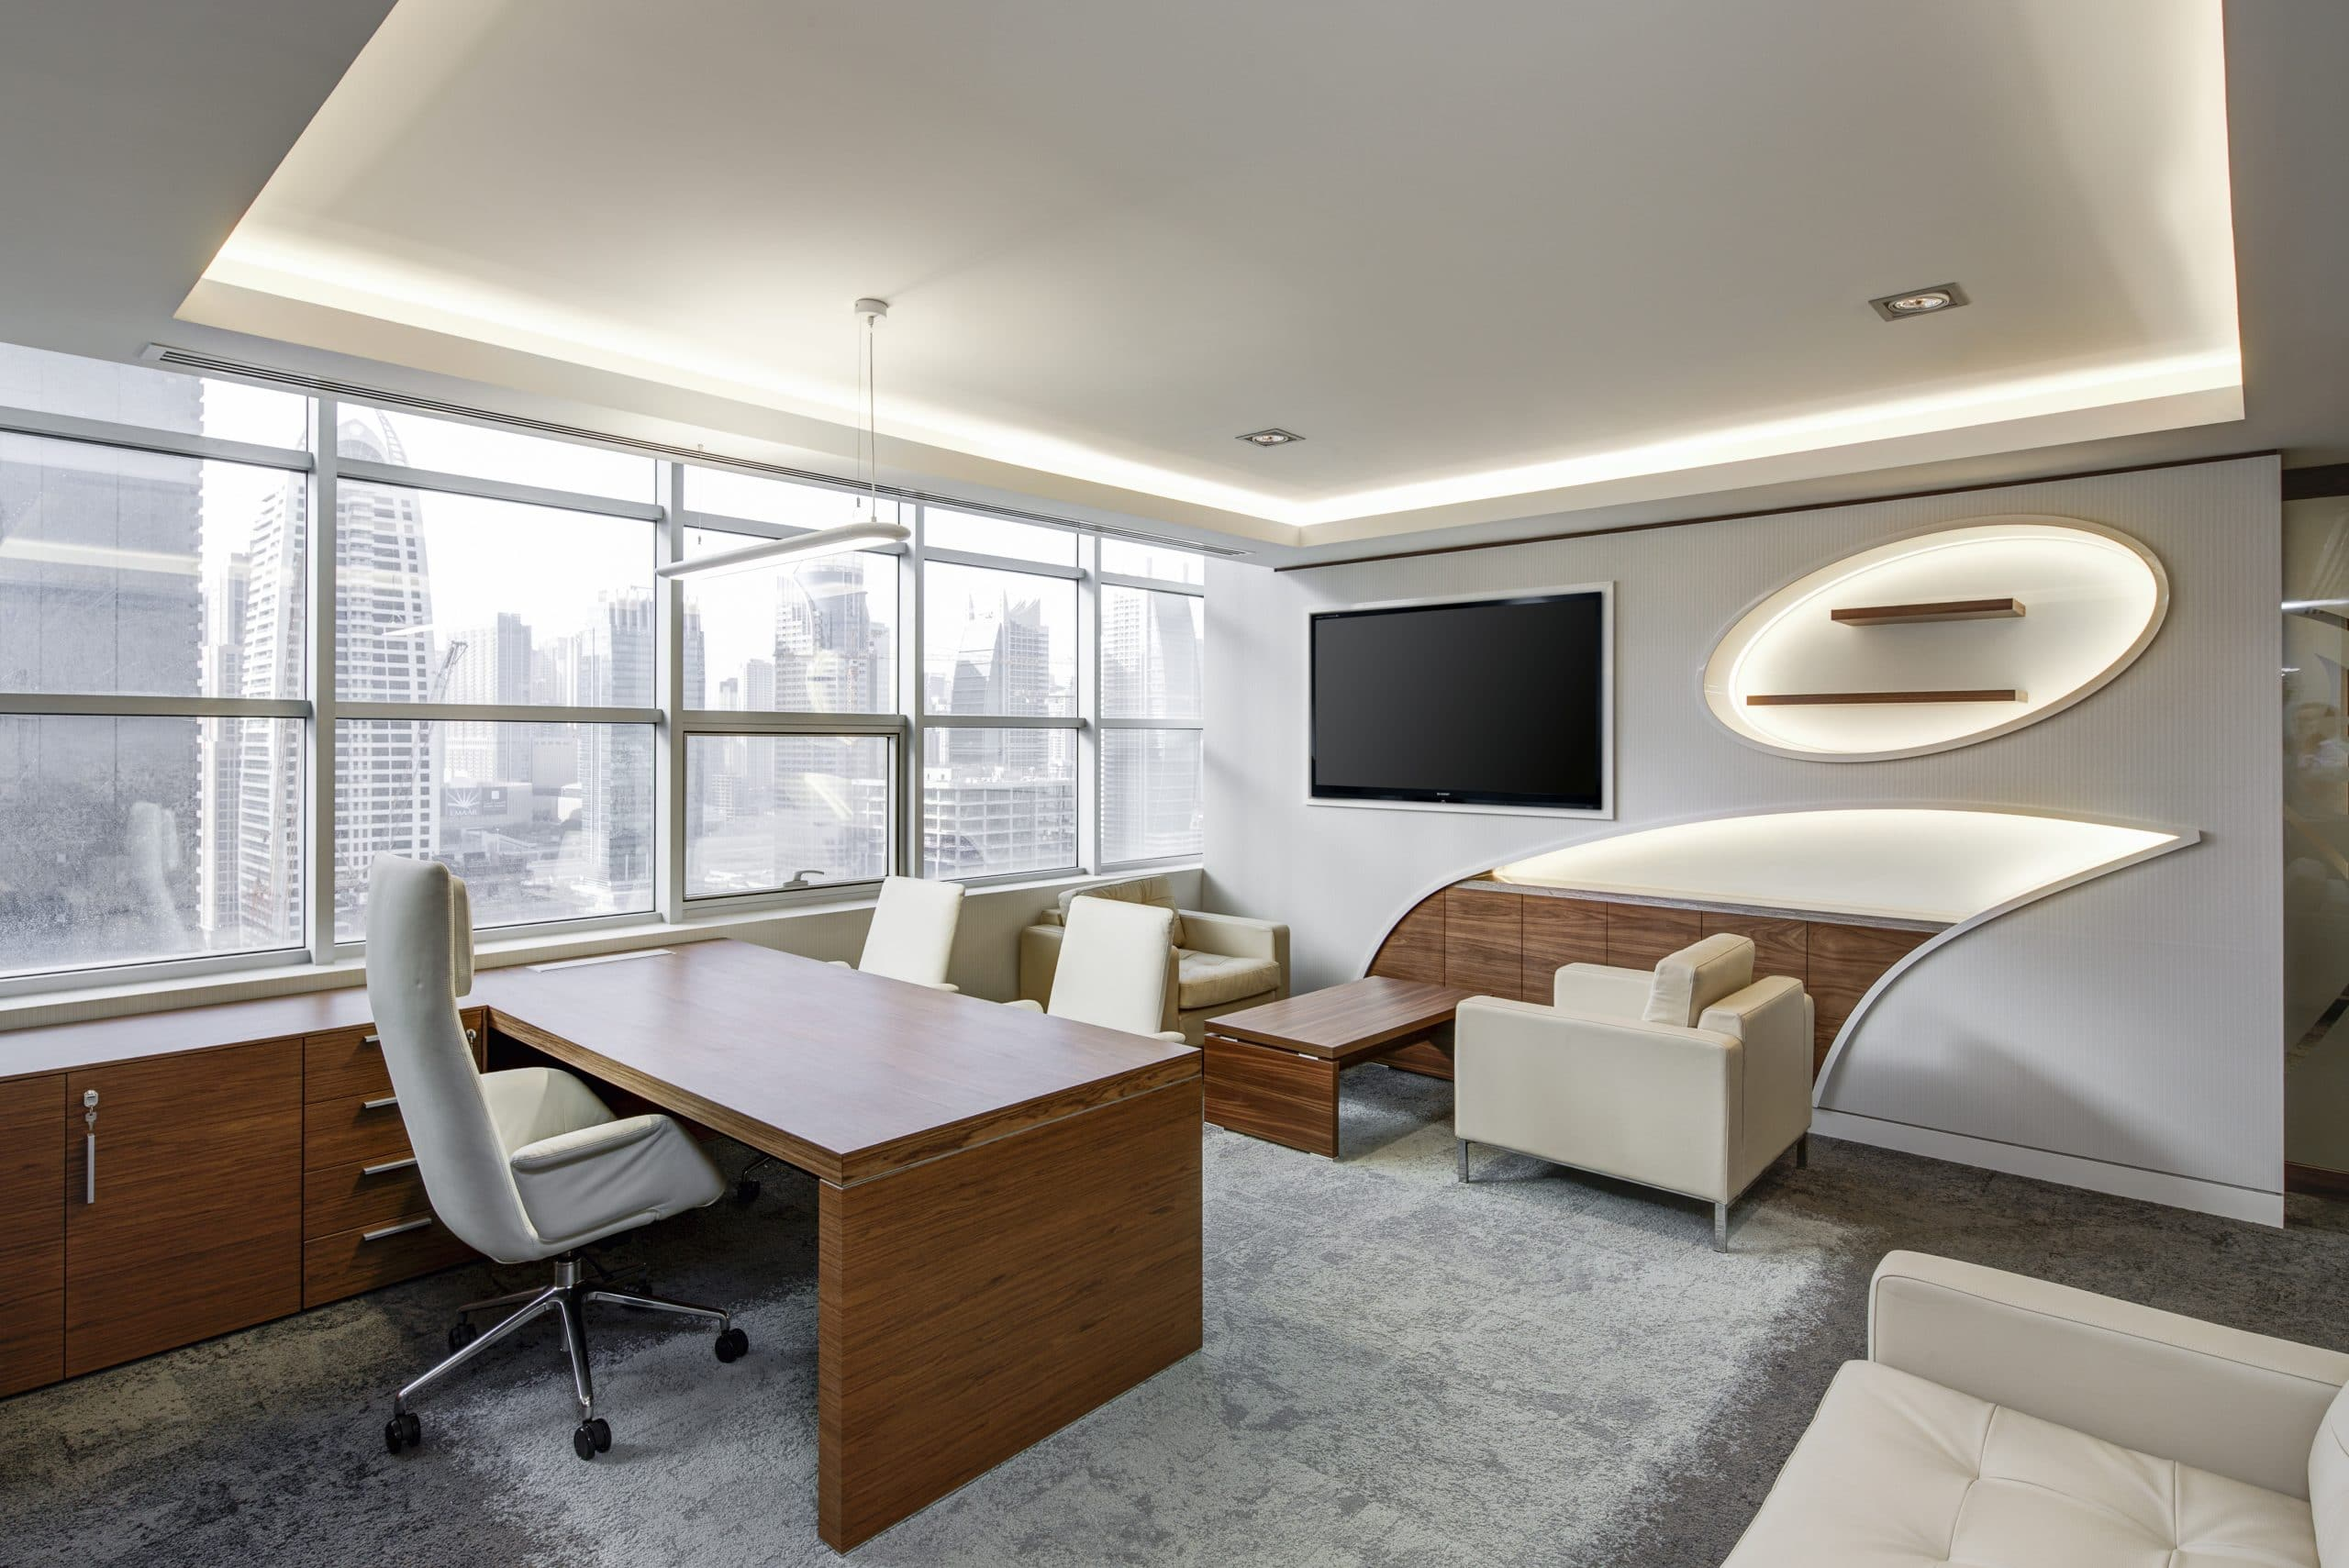 Organize your new office after moving